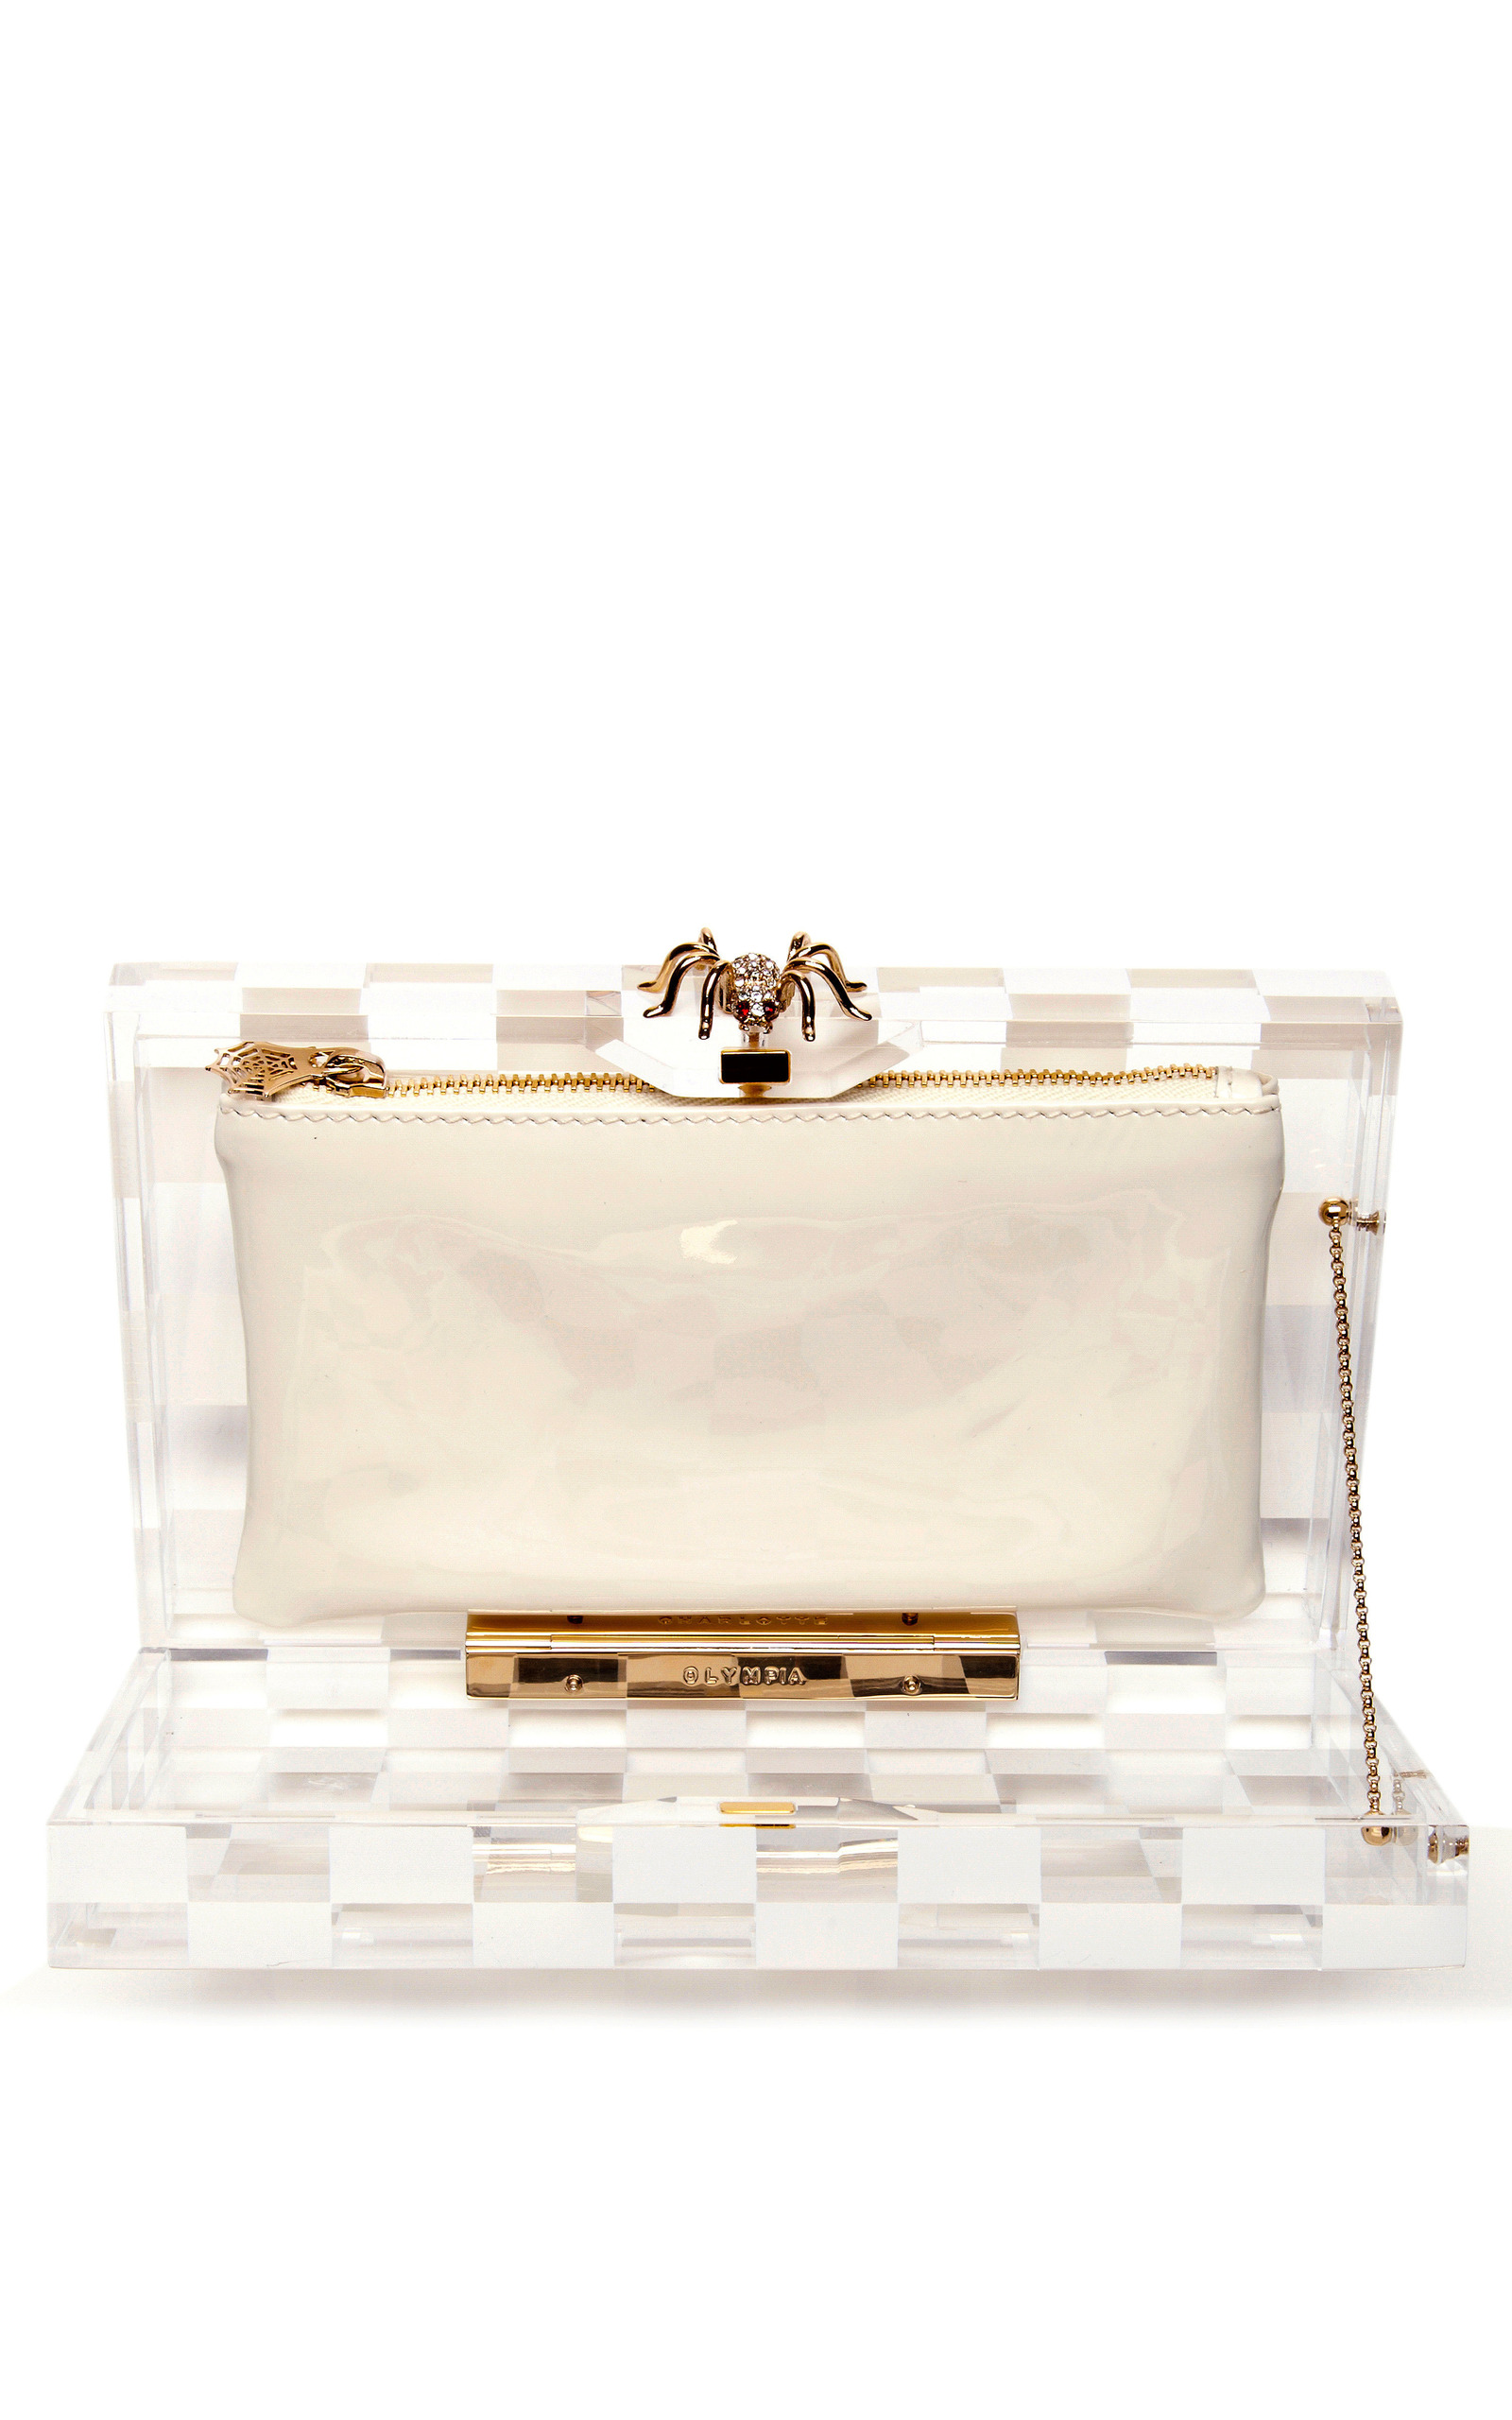 Pandora Squared Perspex Clutch by Charlotte Olympia